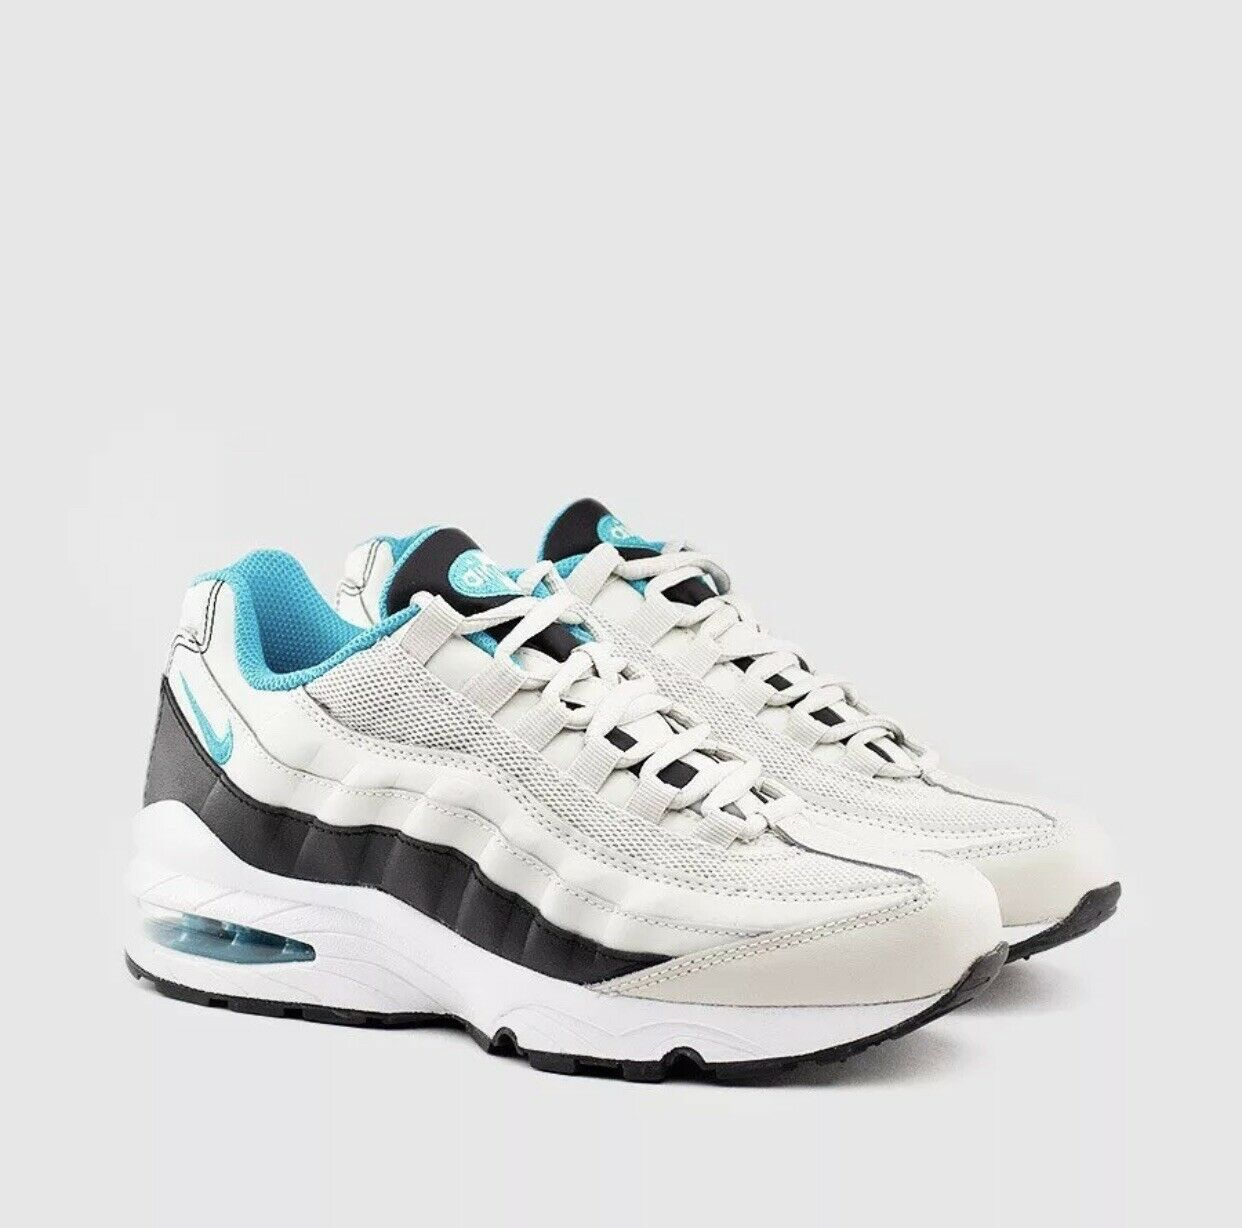 NIKE AIR MAX 95 ESSENTIAL LIGHT BONE SPORT TURQUOISE RUNNING [749766-027] SZ 5